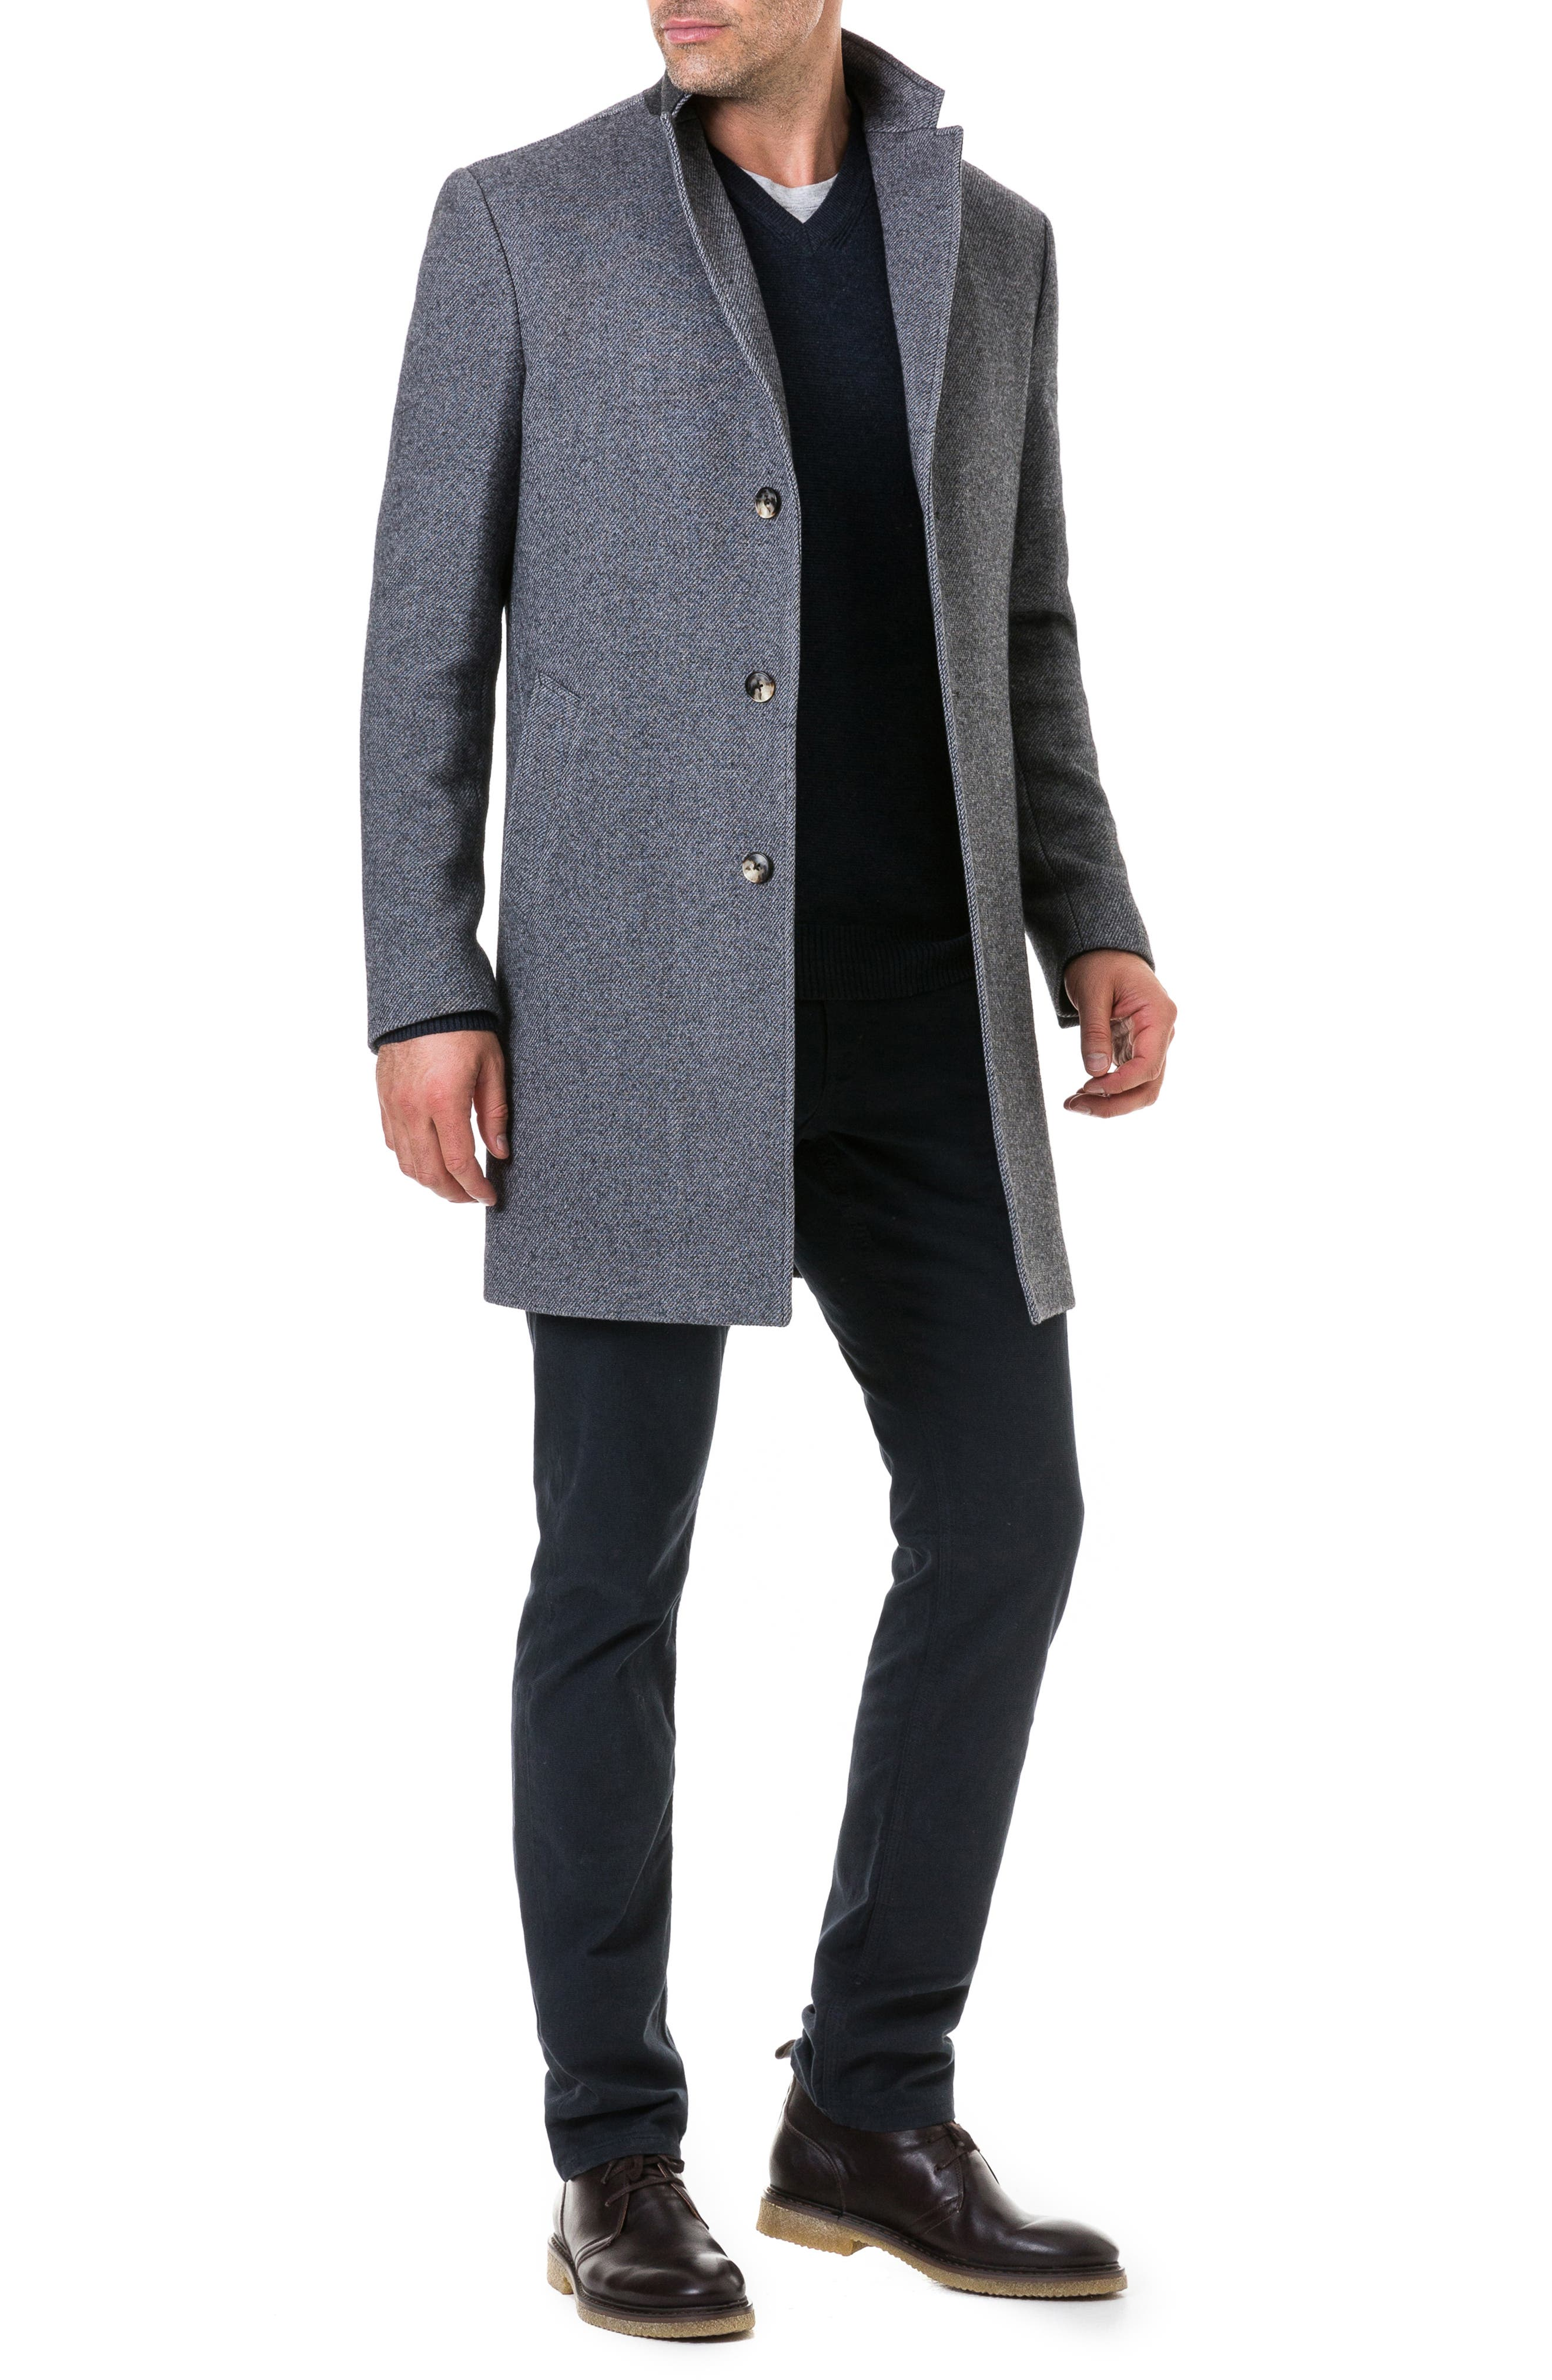 Calton Hill Wool Blend Coat,                             Alternate thumbnail 5, color,                             020